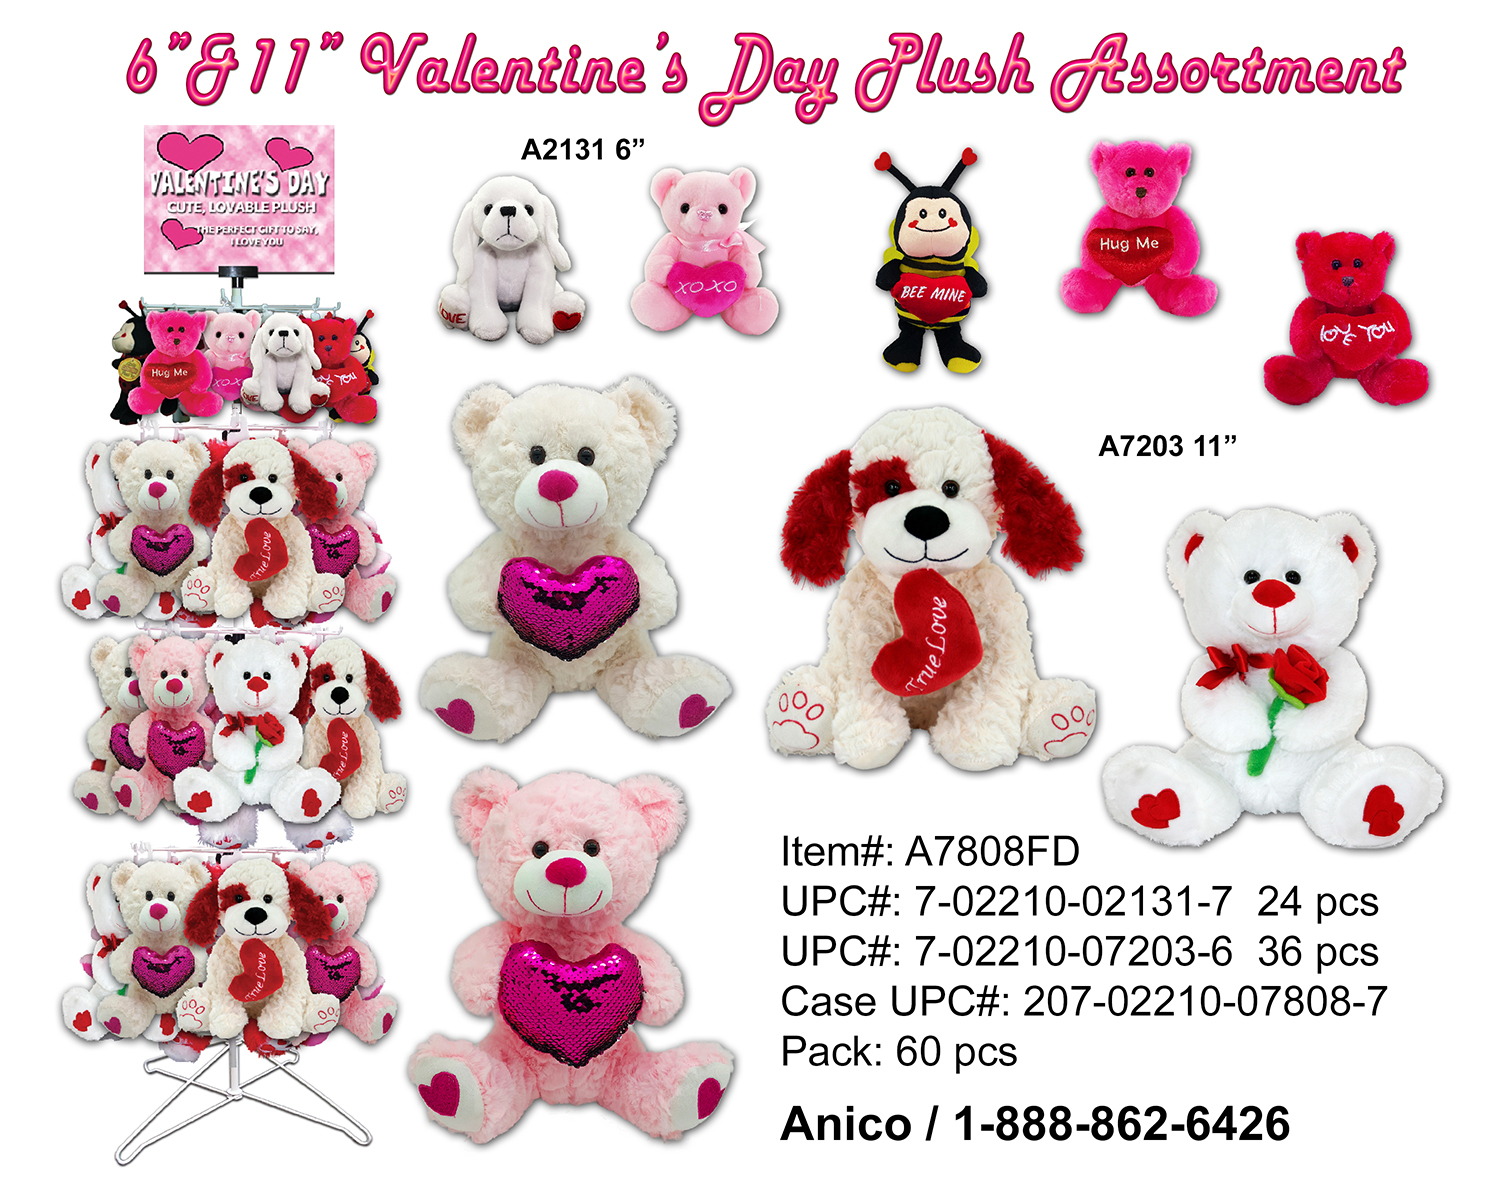 A7808FD Valentine Sheet for Email 2019 0